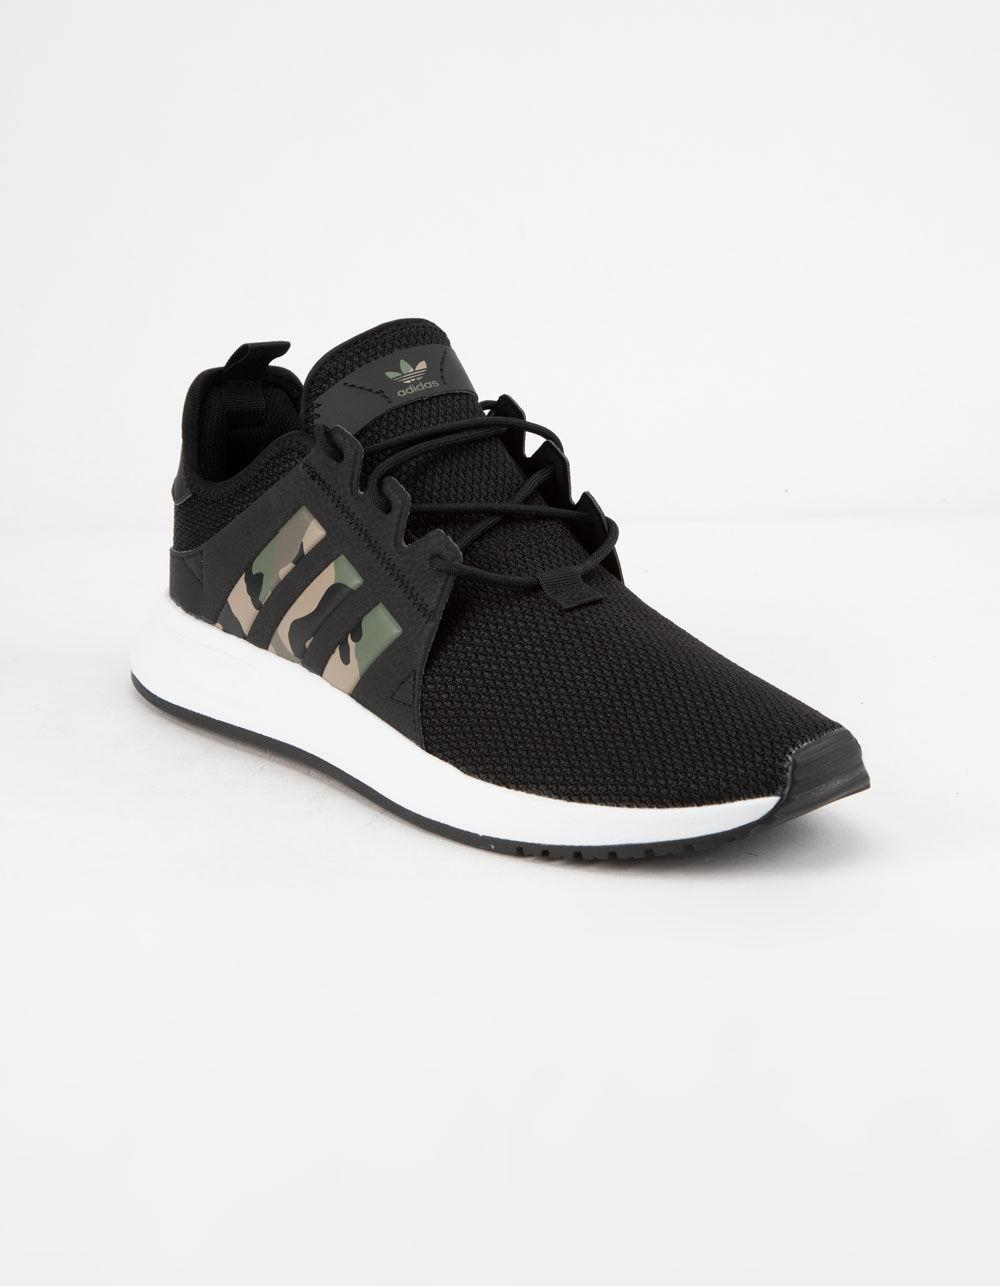 Lyst - adidas X plr Core Black   Camo Shoes in Black for Men a545338ee